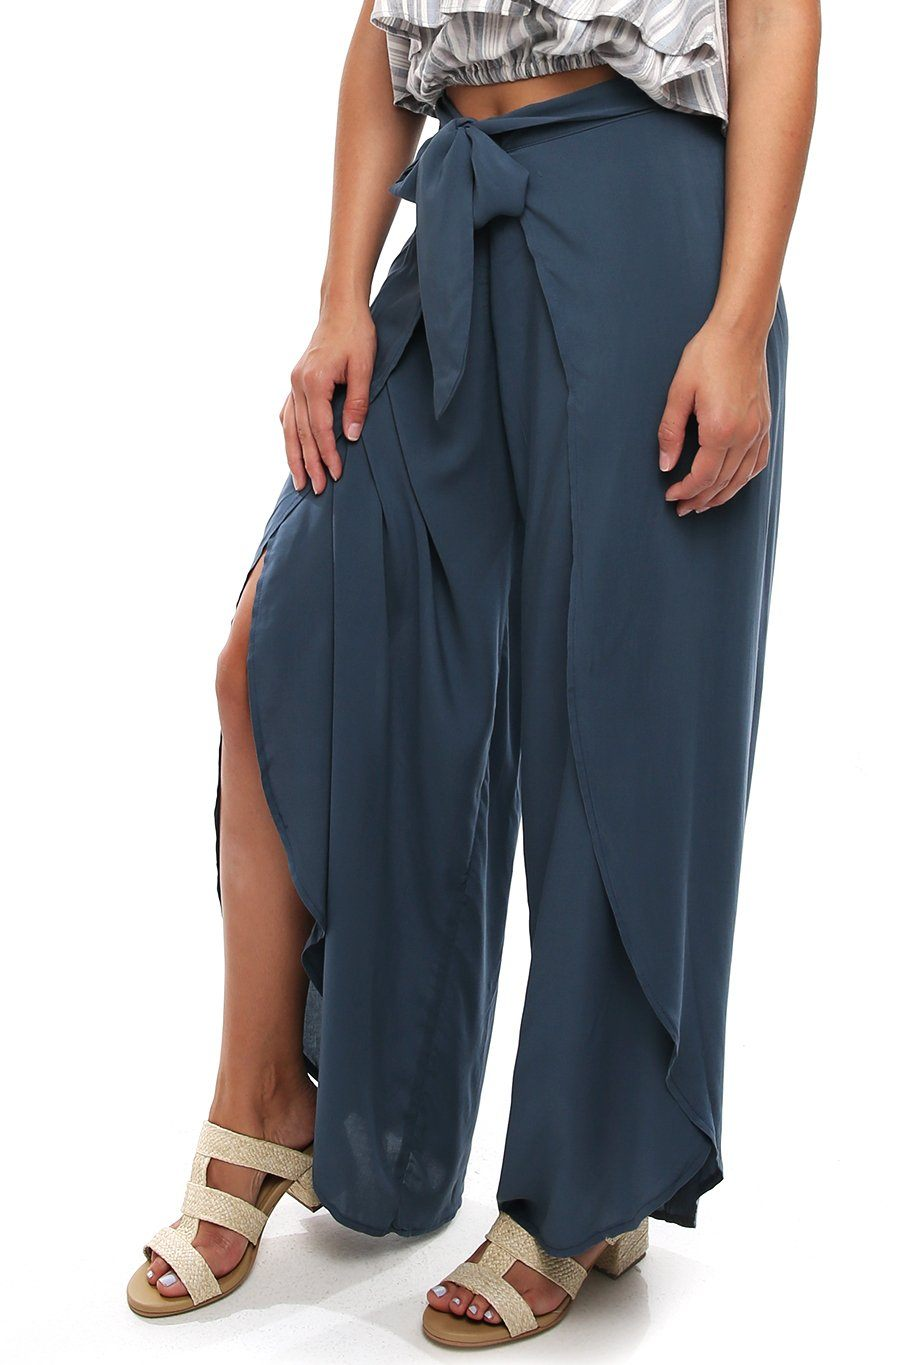 Bella Beach Pant - Mirage - Shore